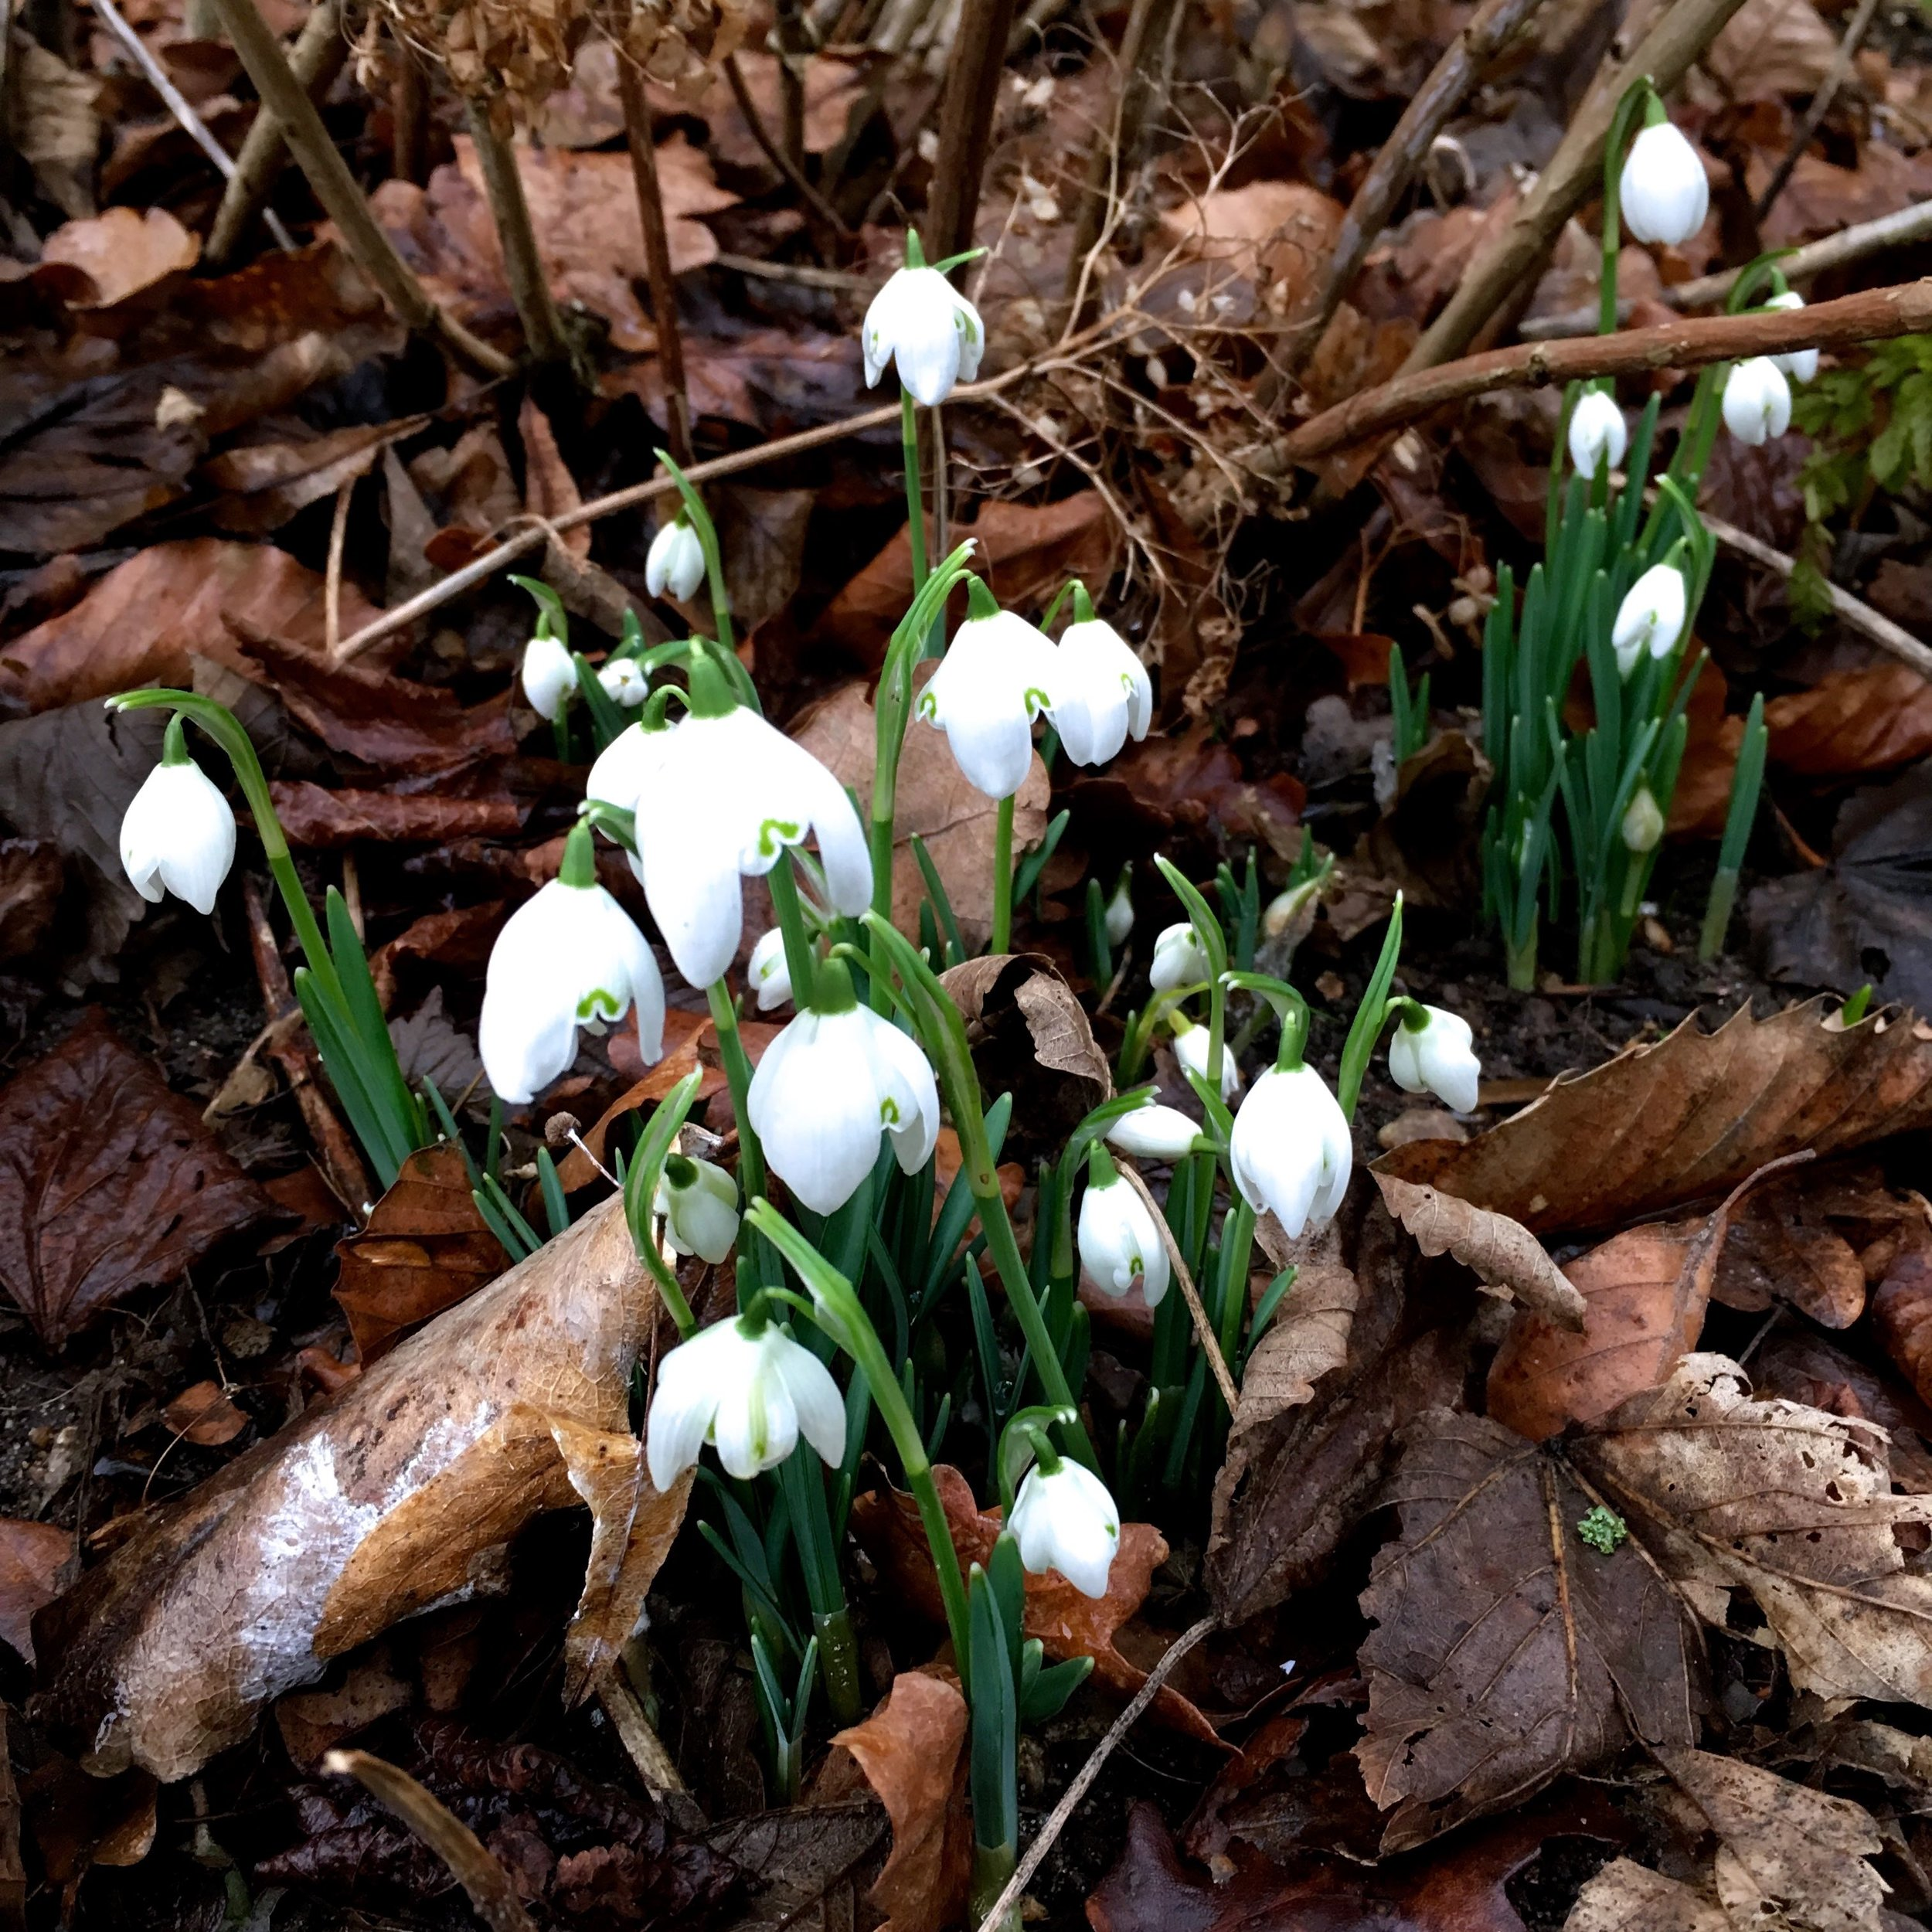 delicate snowdrops in the leaves at Blickling